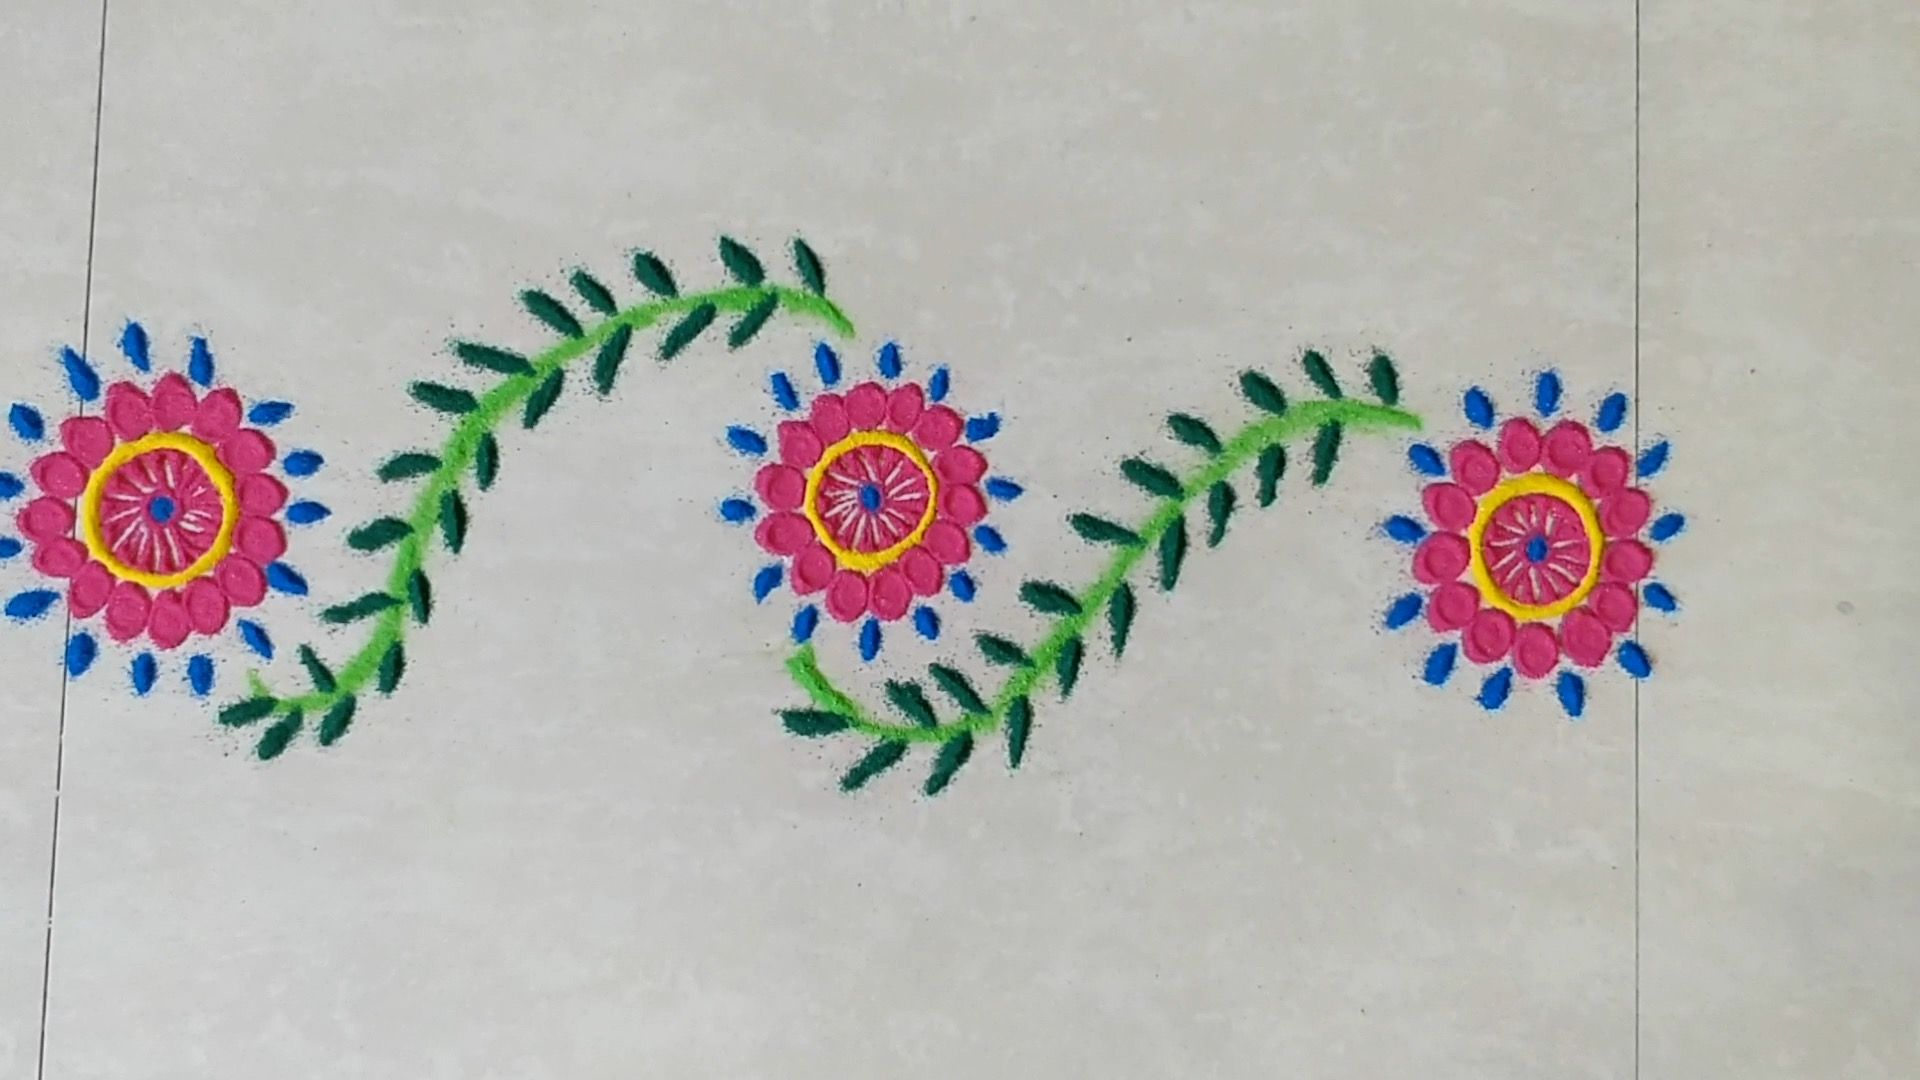 In this video, I have shown how to make simple and beautiful rangoli ...